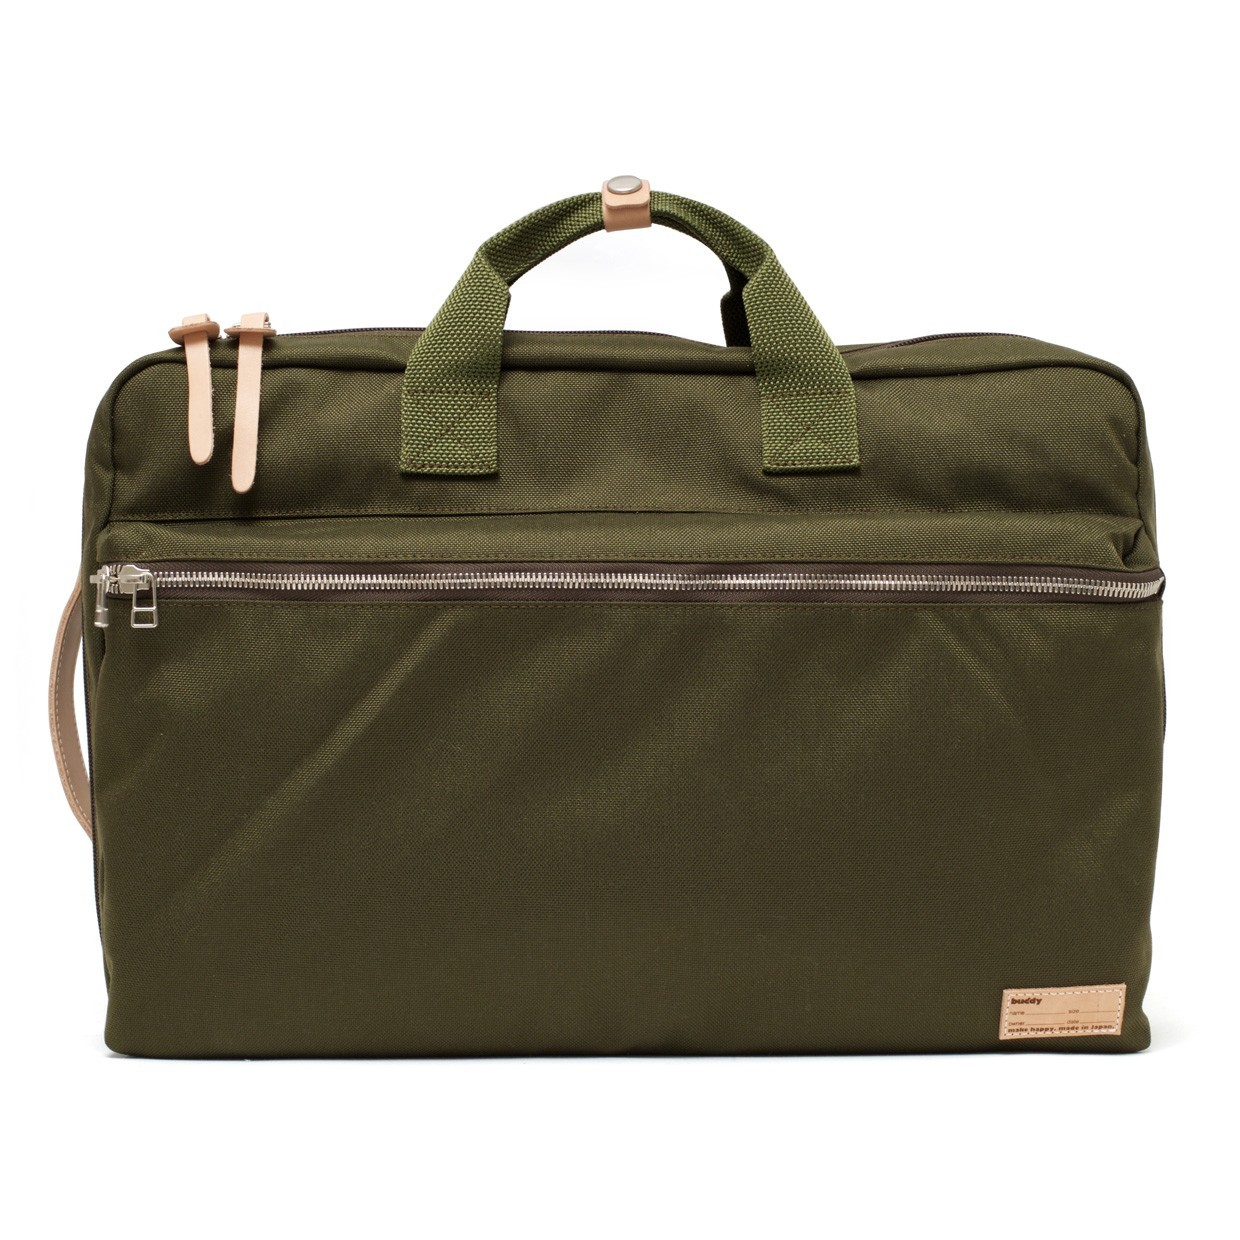 2Way Fang Bag Olive